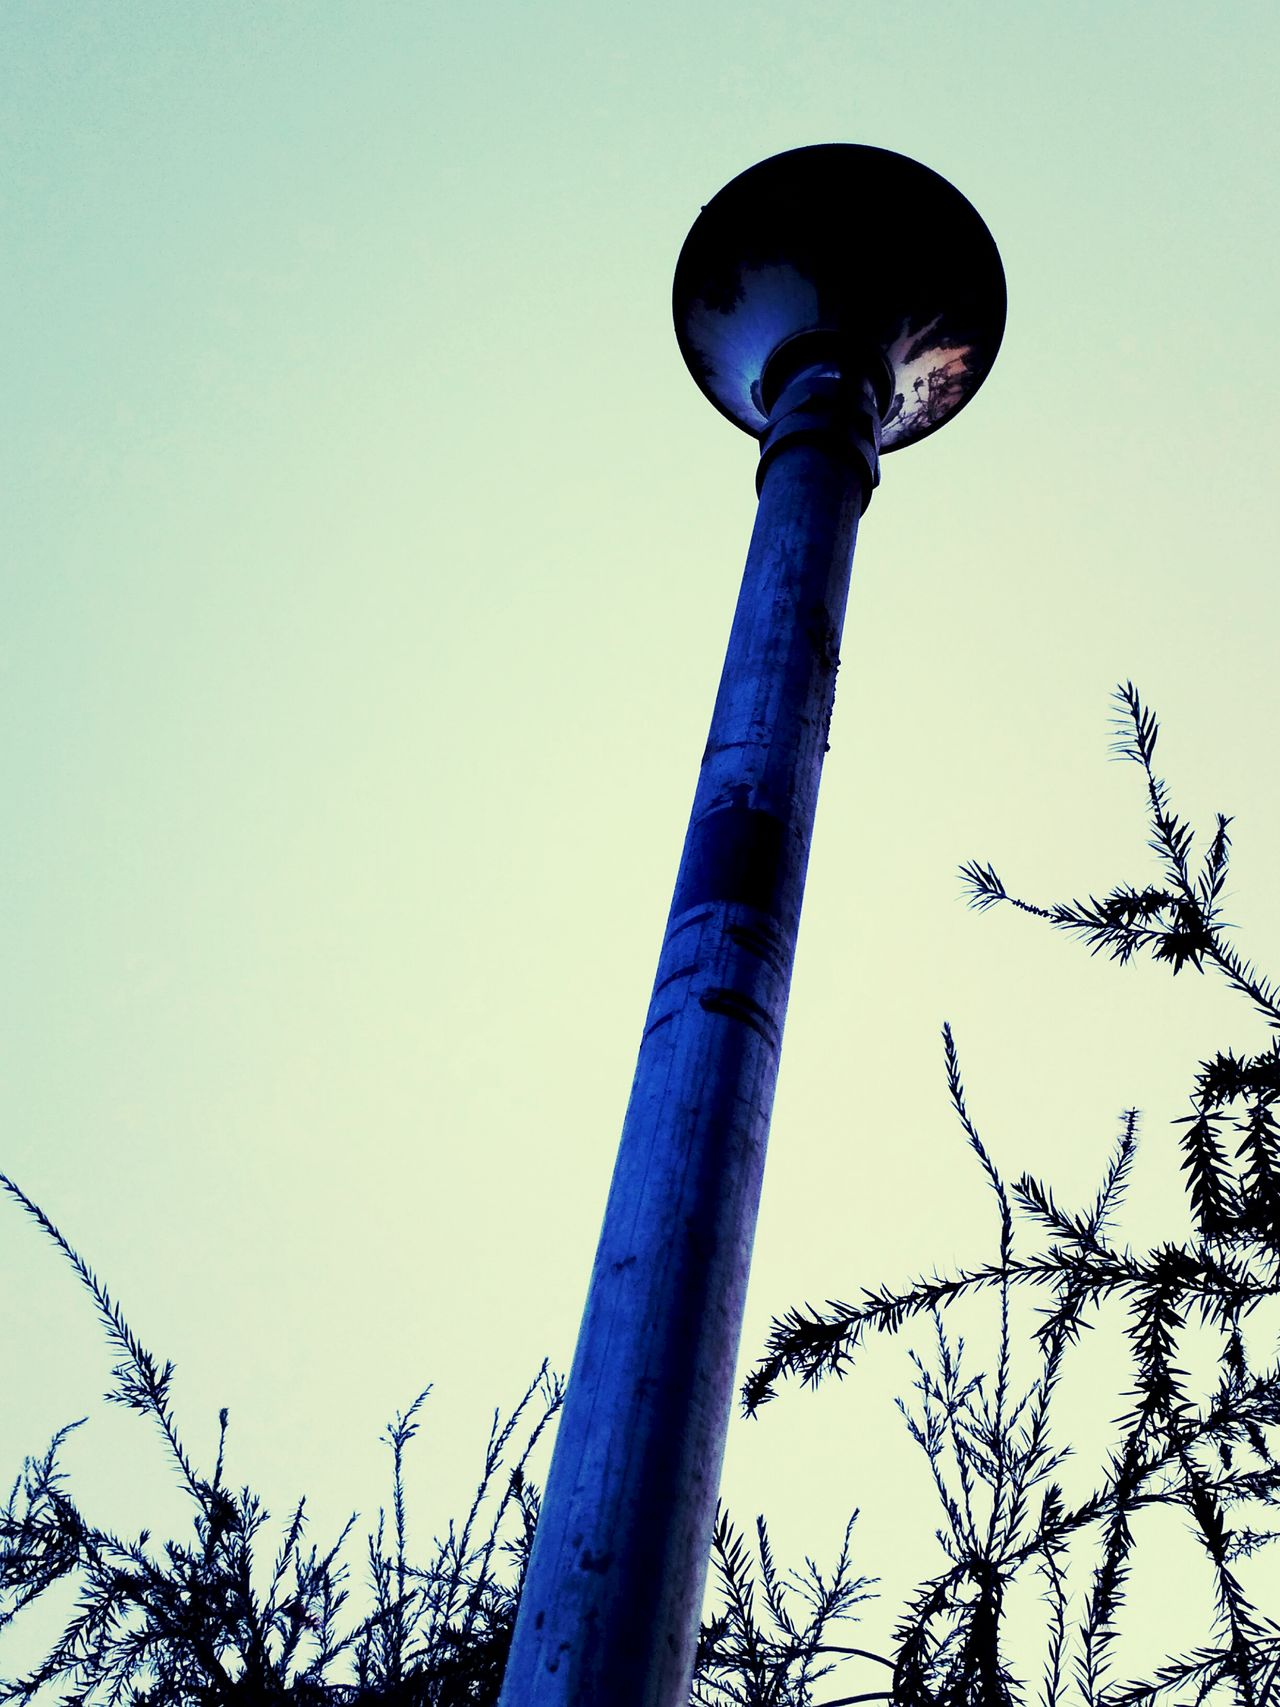 Street Light Streetphotography Sky Nature Outdoors No People Low Angle View